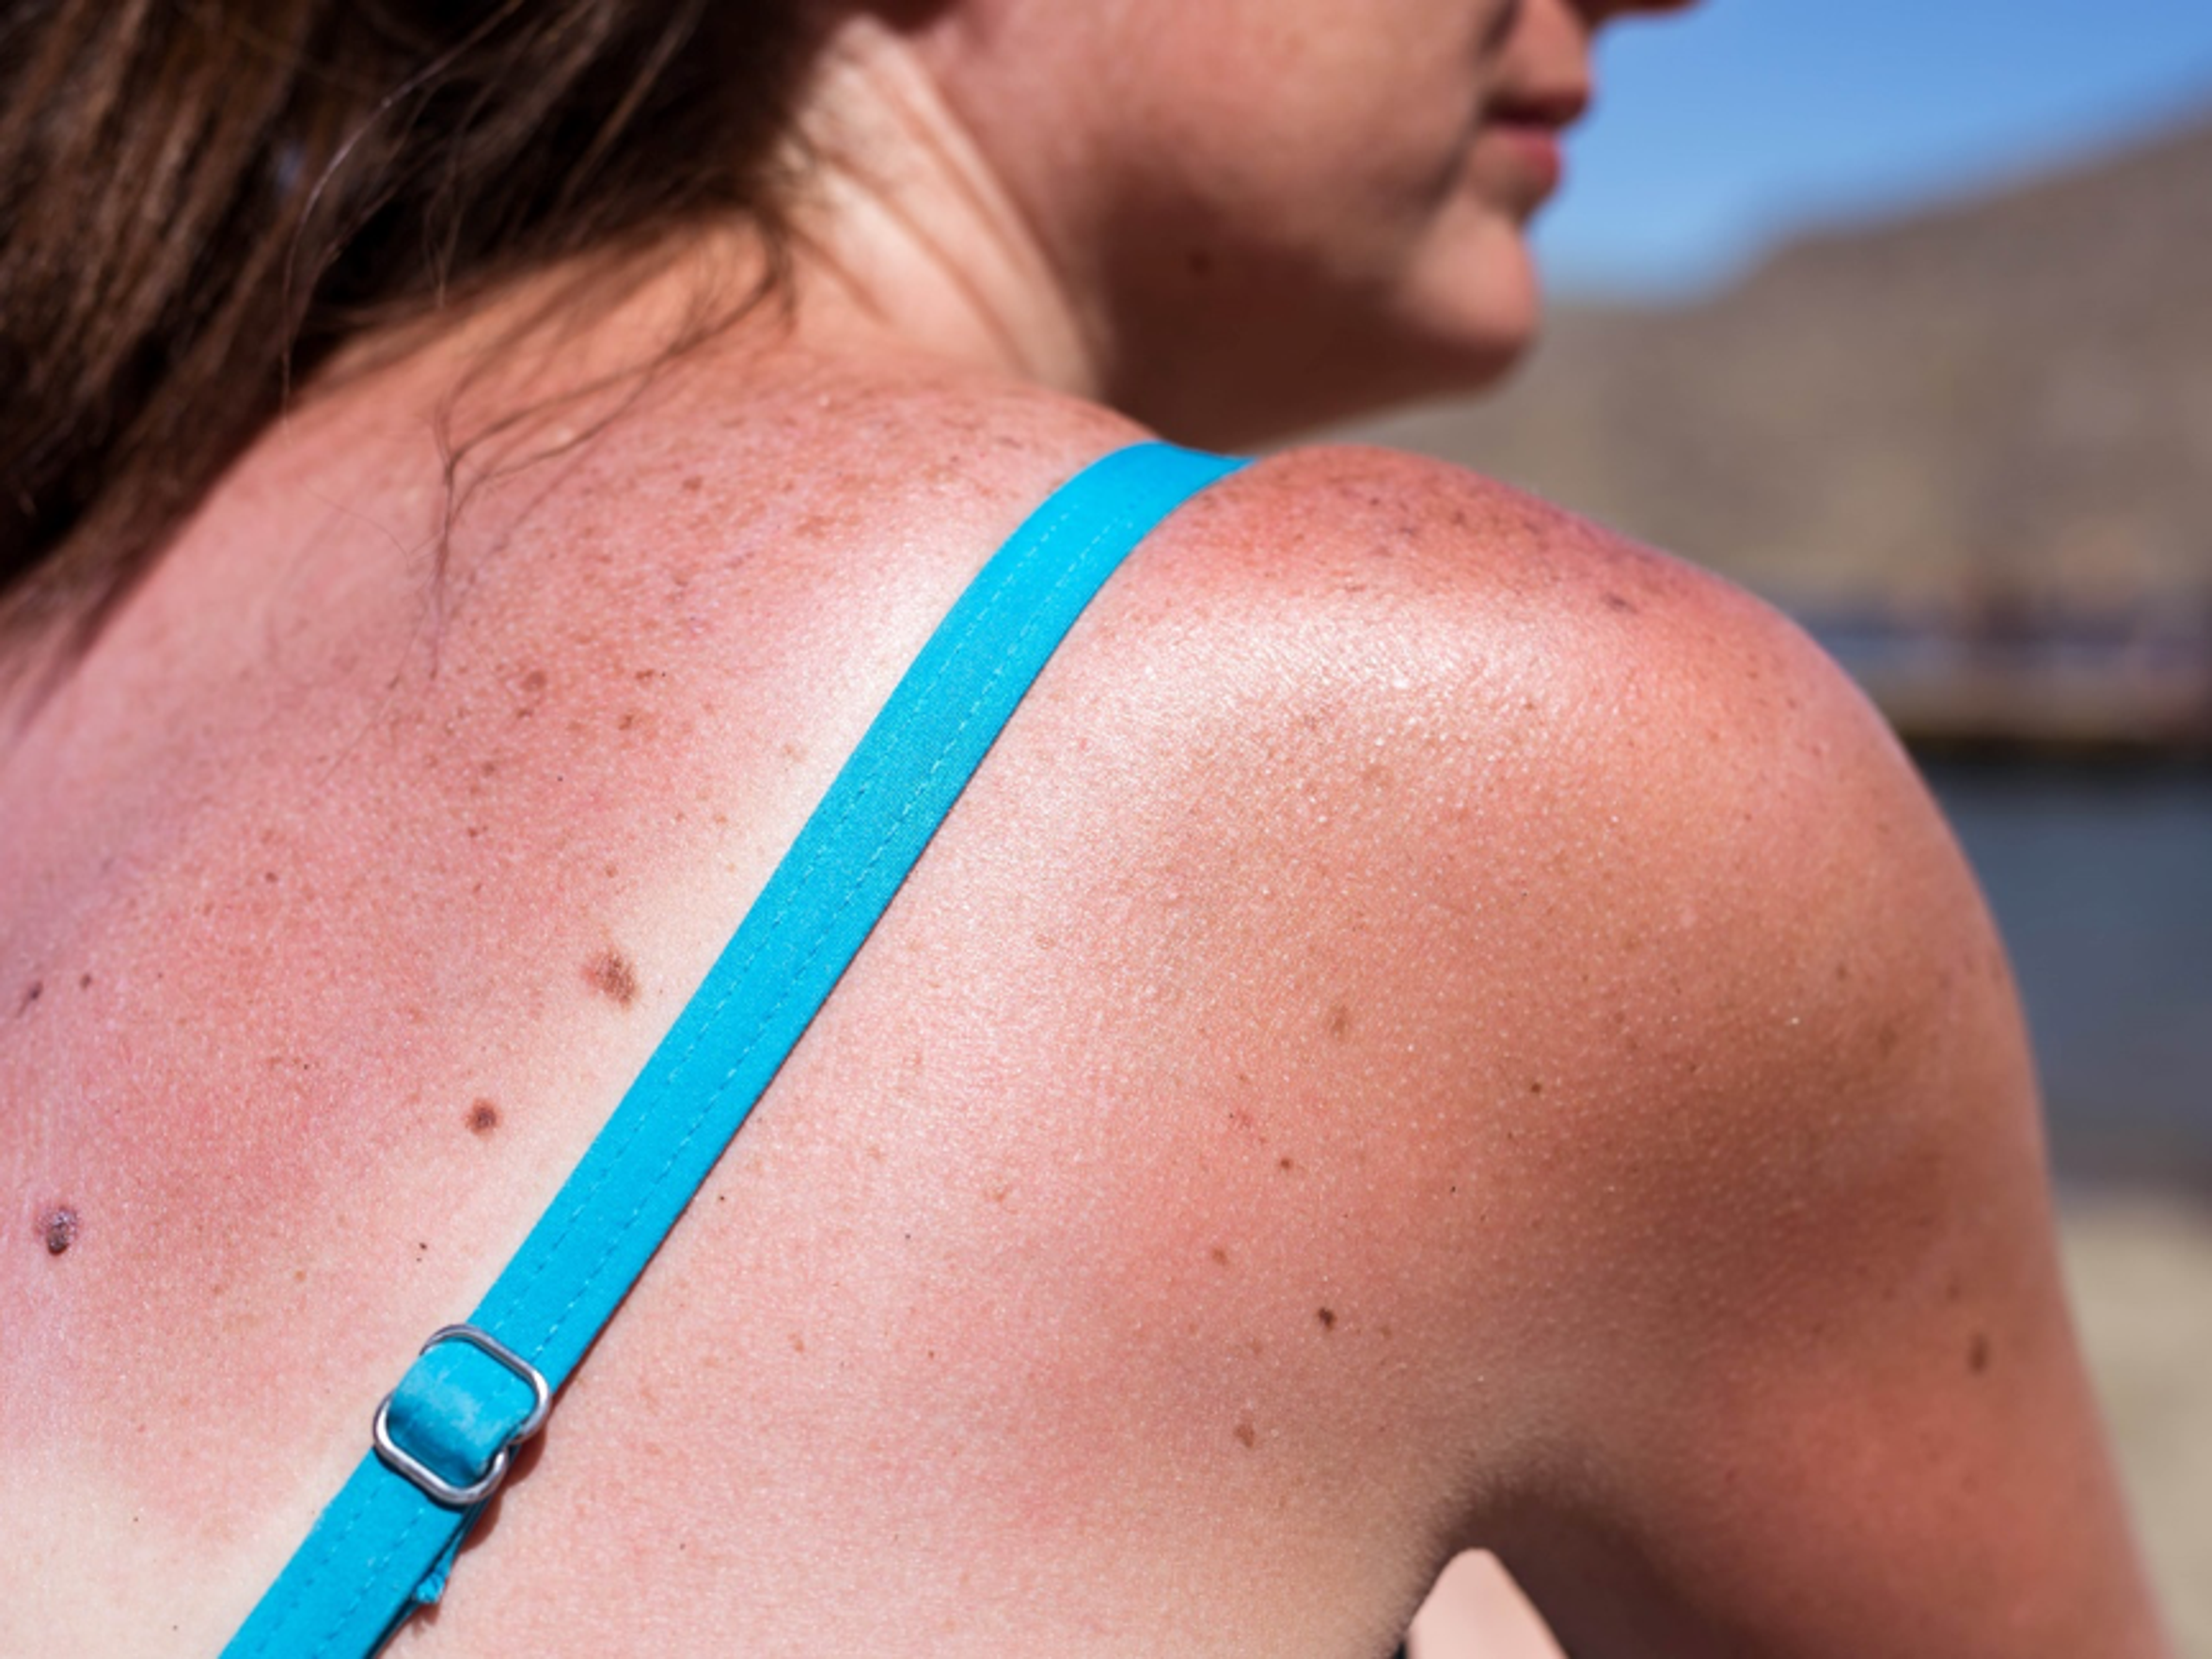 The risk of melanoma doubles after five sunburns.